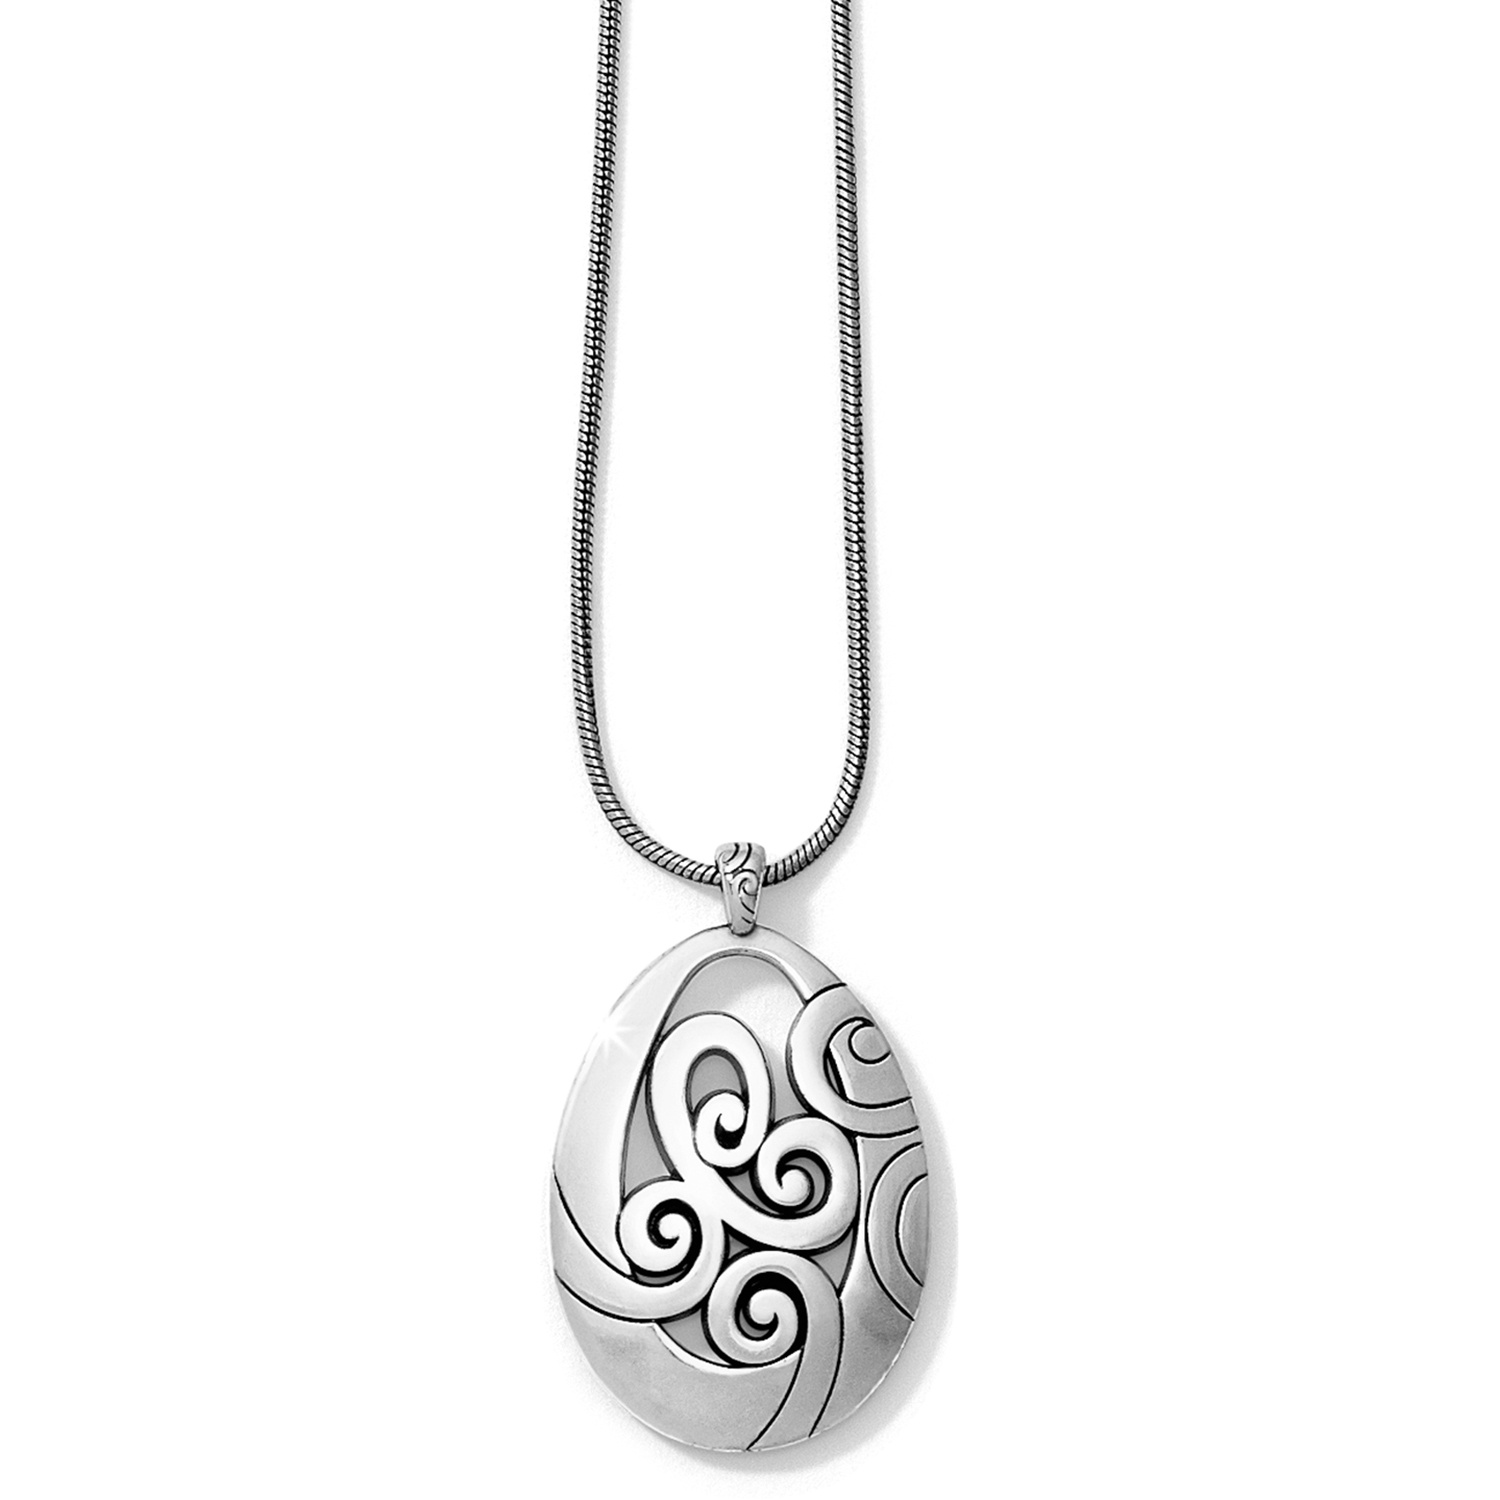 Mingle mingle necklace necklaces mingle mingle necklace mozeypictures Images